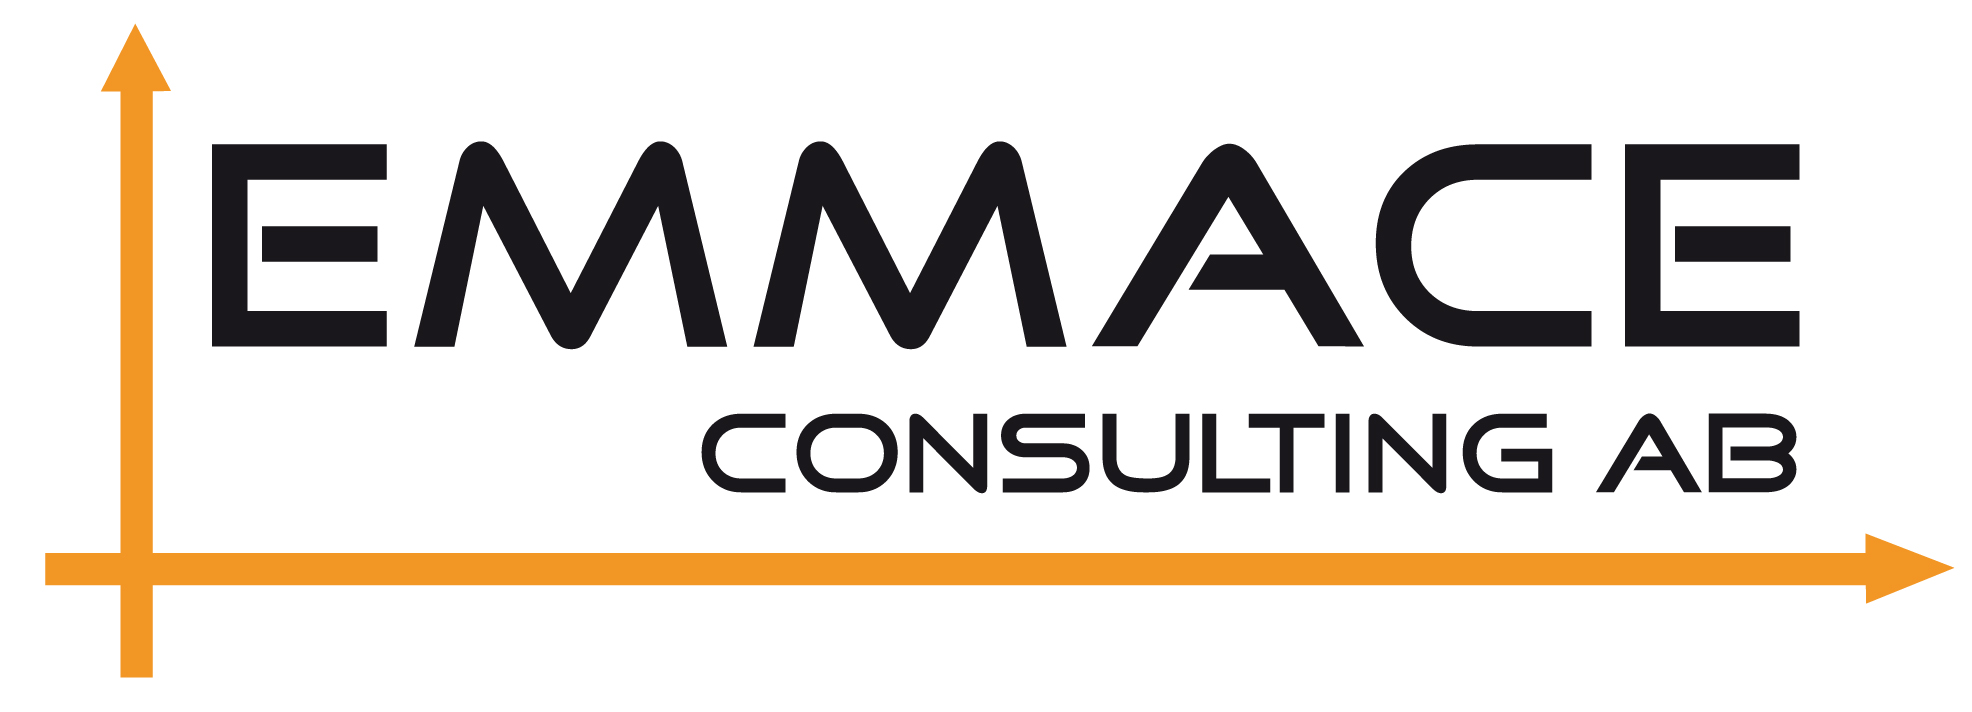 Emmace Consulting AB